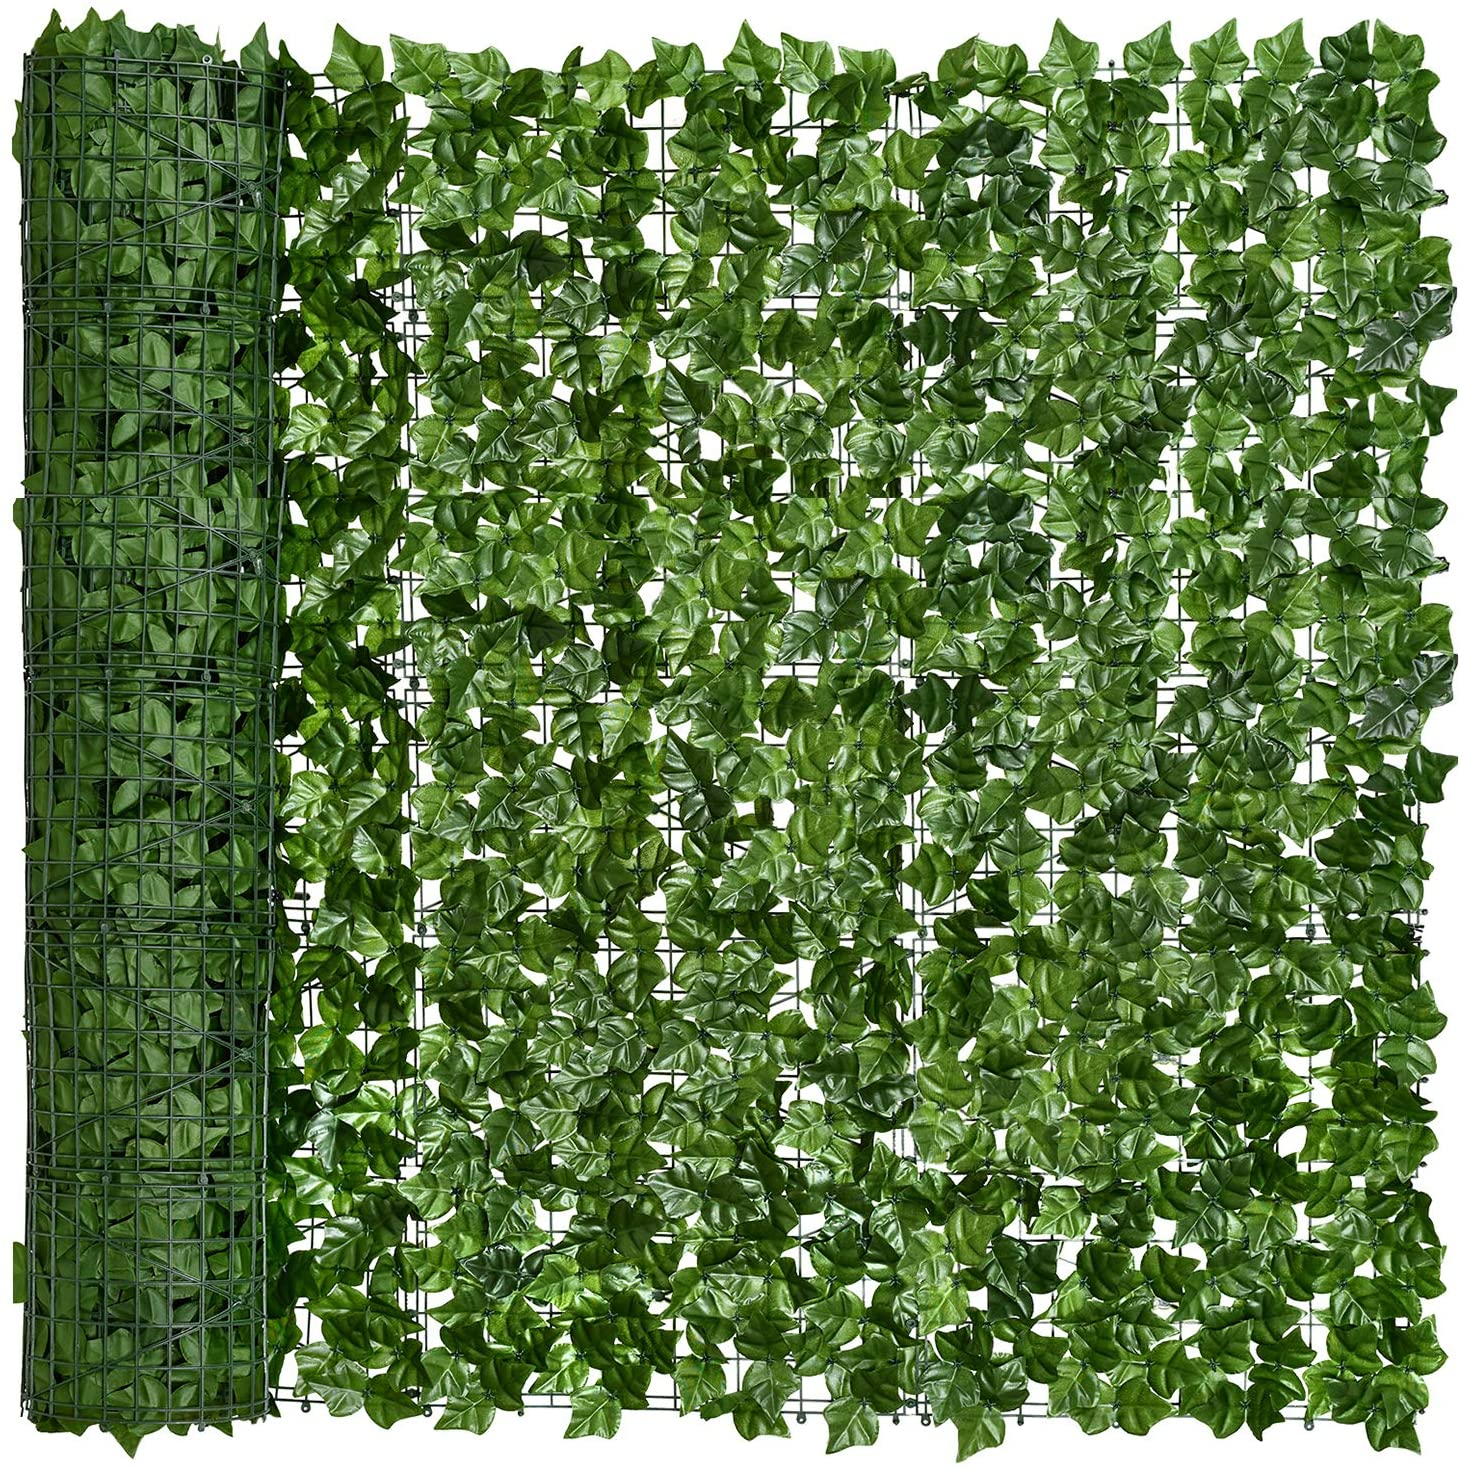 DearHouse Artificial Faux Ivy Hedge Privacy Fence Wall Screen, Leaf and Vine Decoration for Outdoor Garden Decor, (157.559inch)